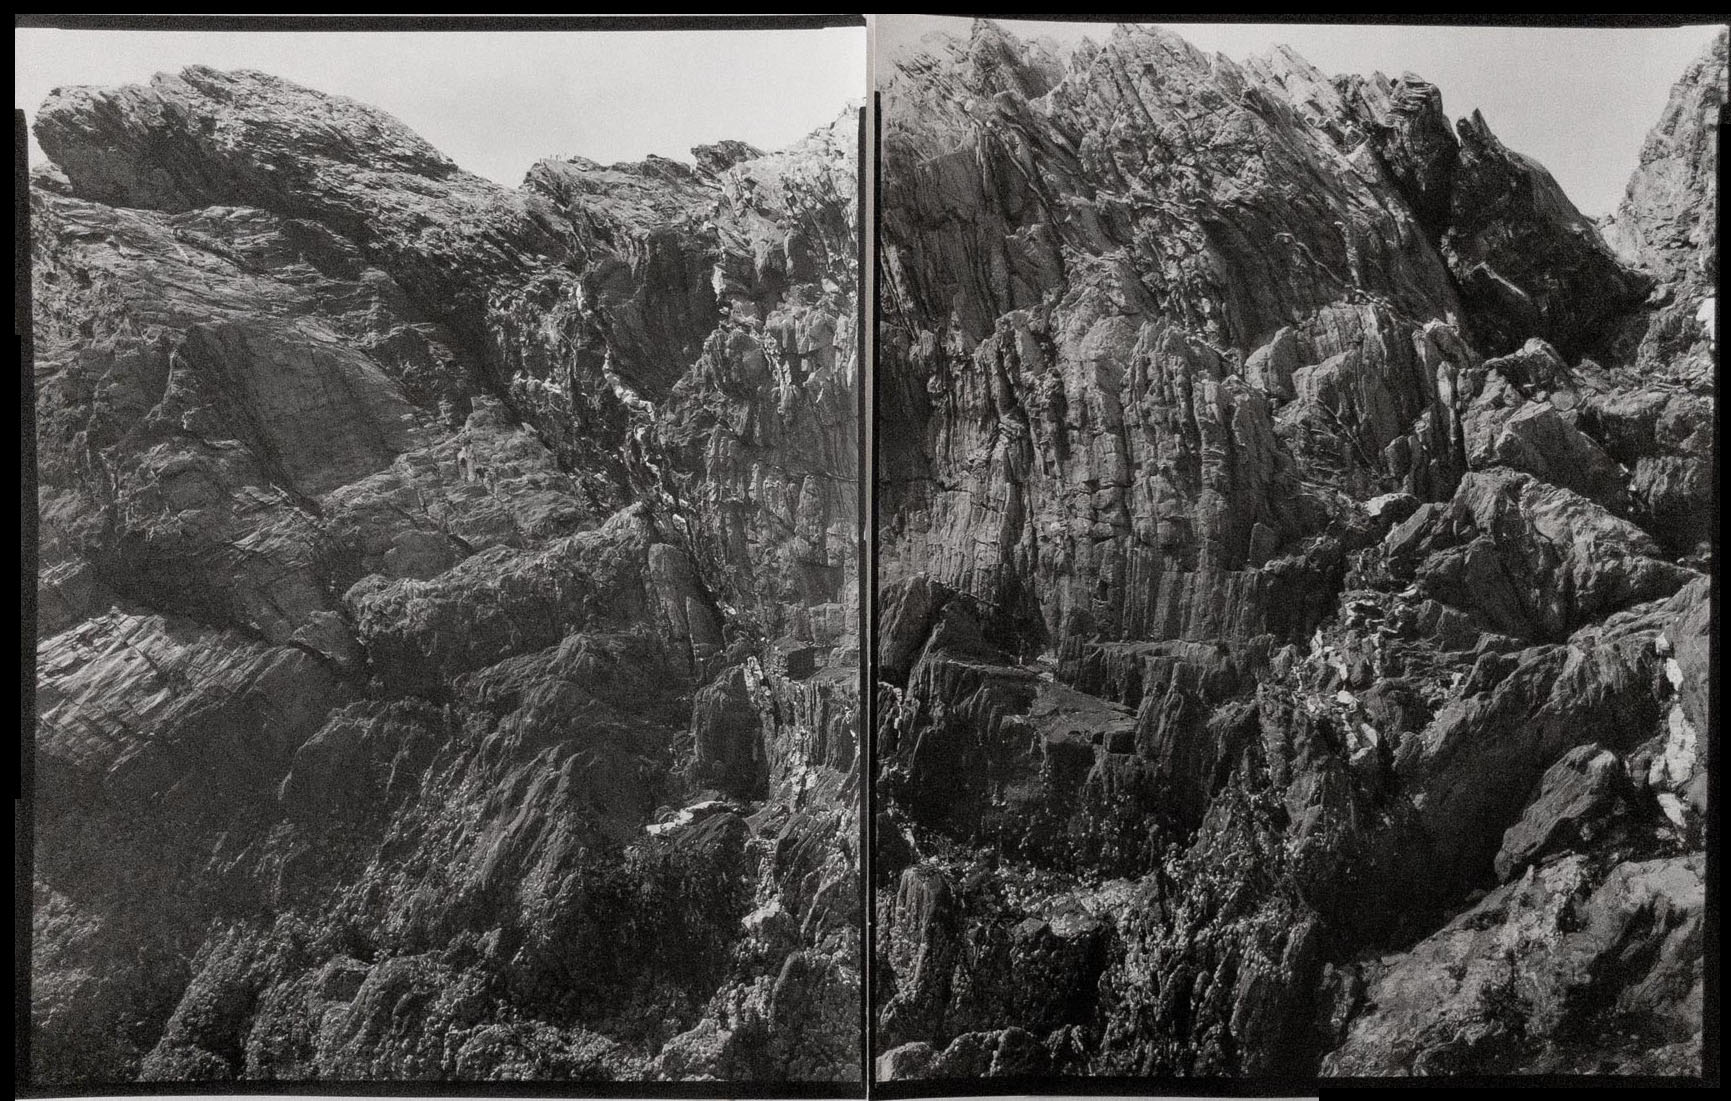 2. Untitled diptych (Fort Getty 7-16-02-2), 2002